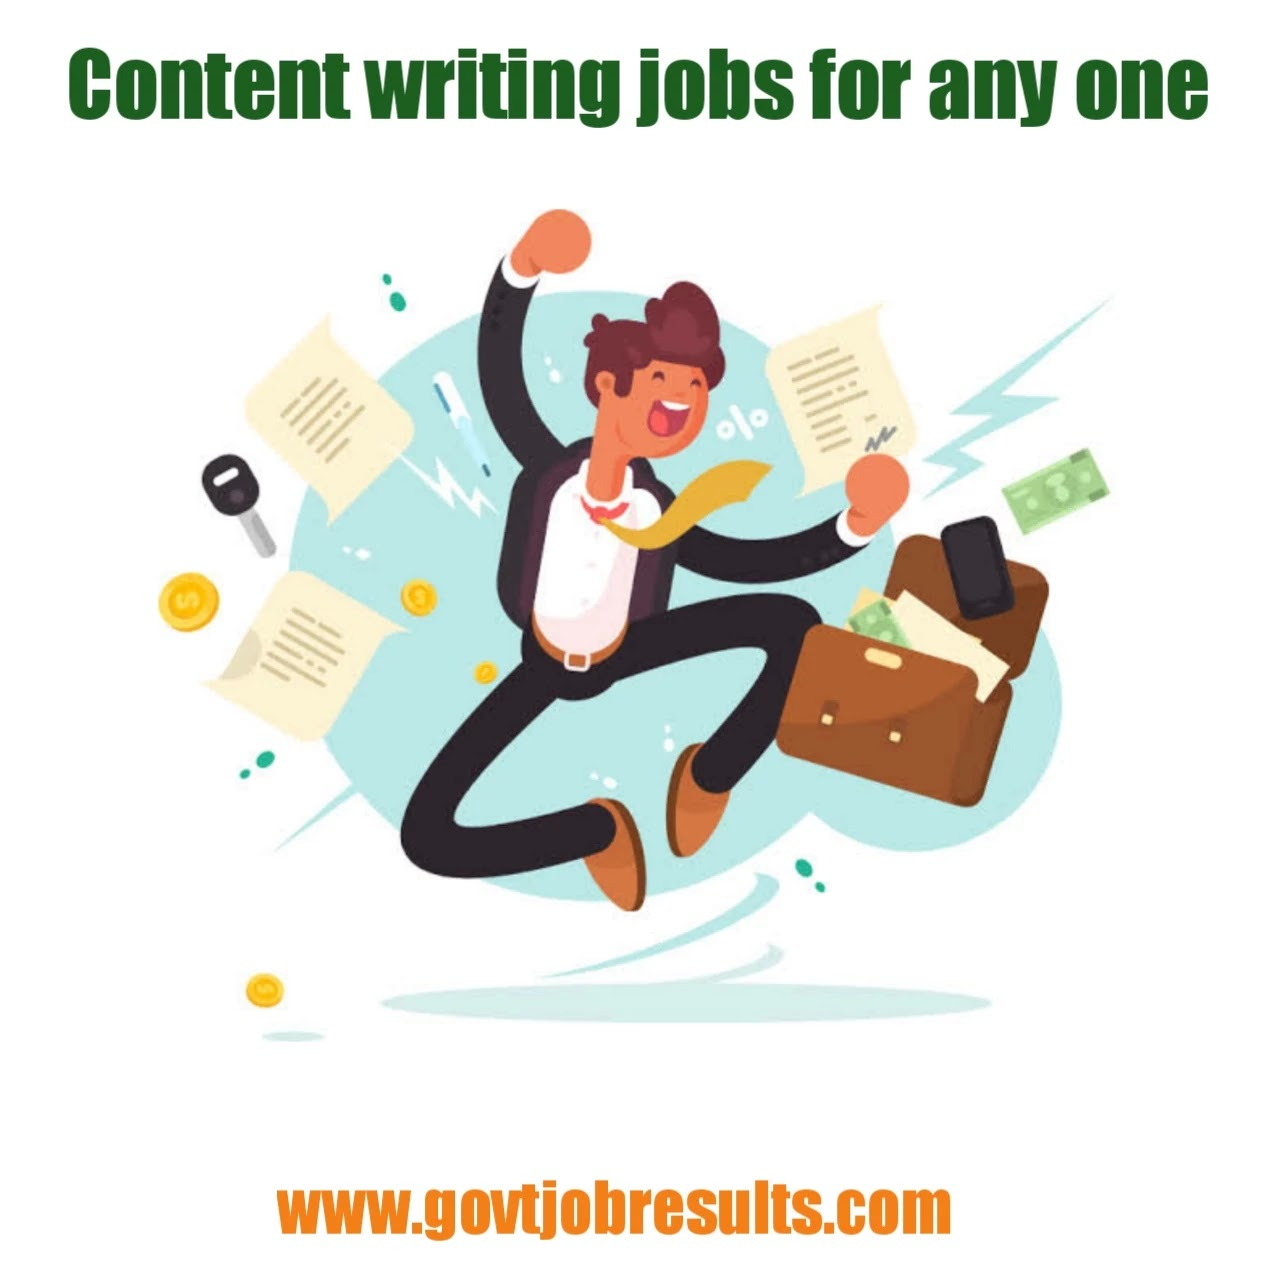 jobs for content writing